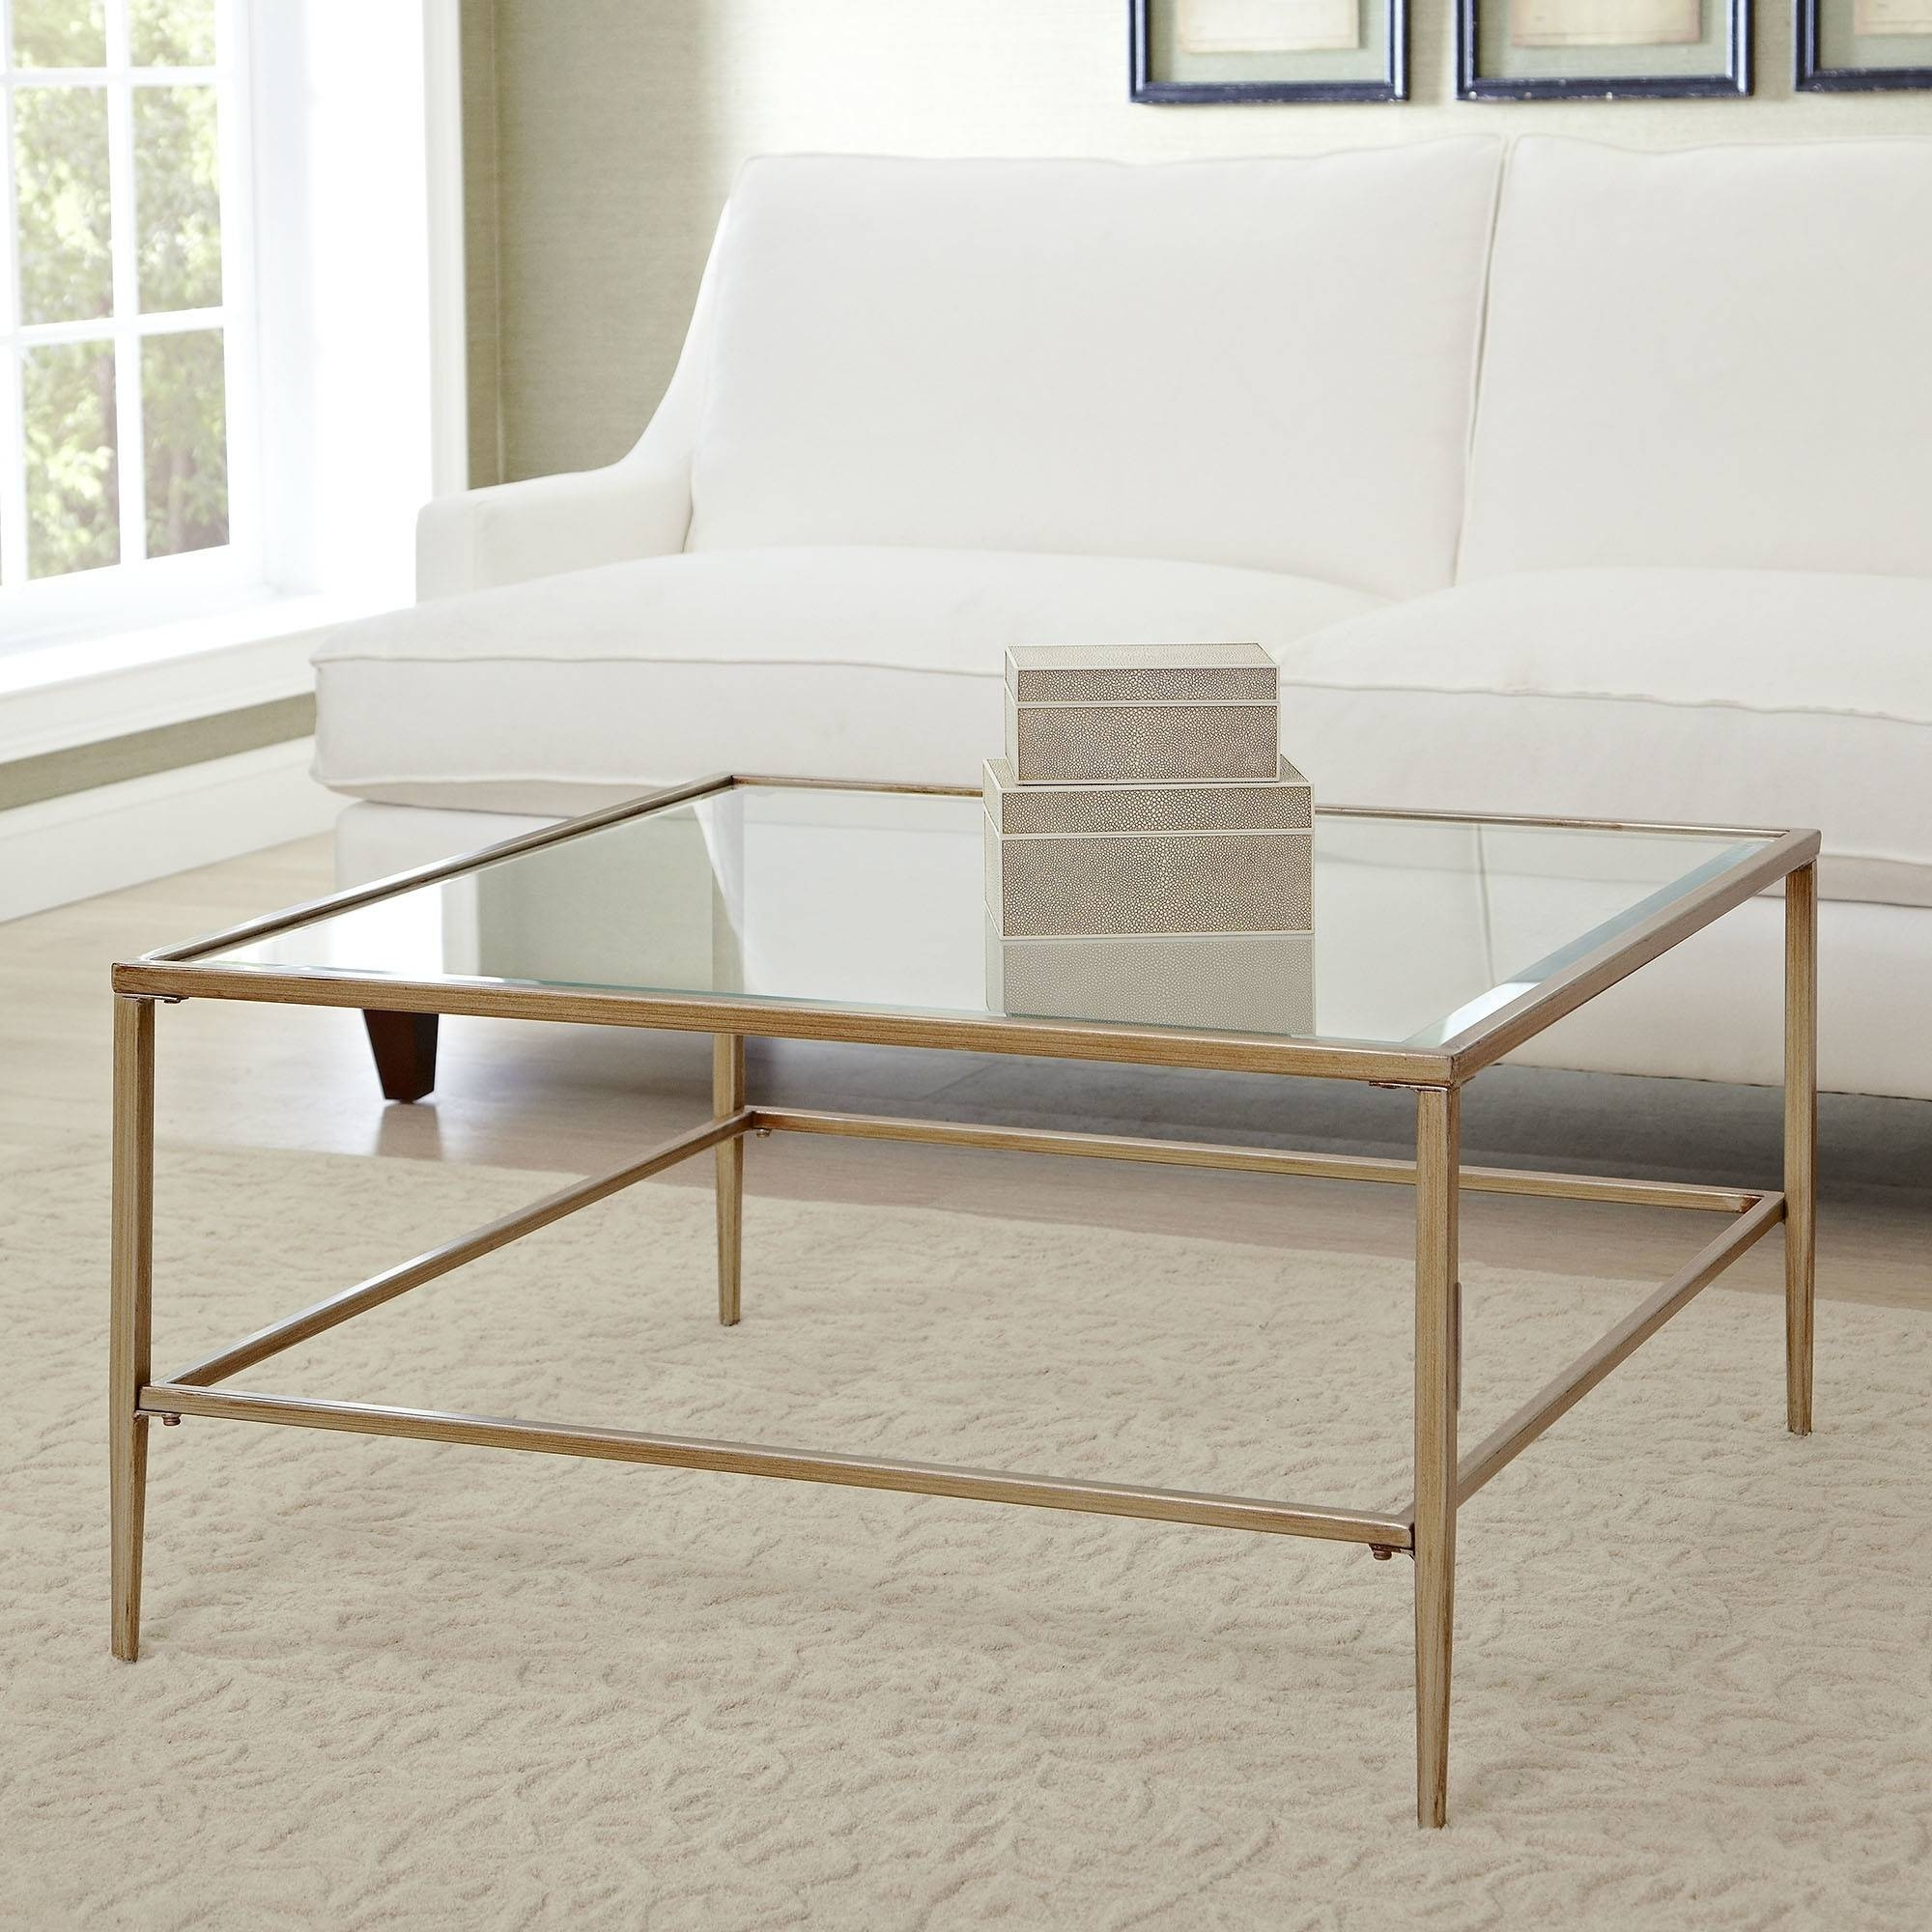 Coffee Table : Wayfair Glass Coffee Table With Regard To Brilliant inside Wayfair Coffee Table Sets (Image 10 of 30)